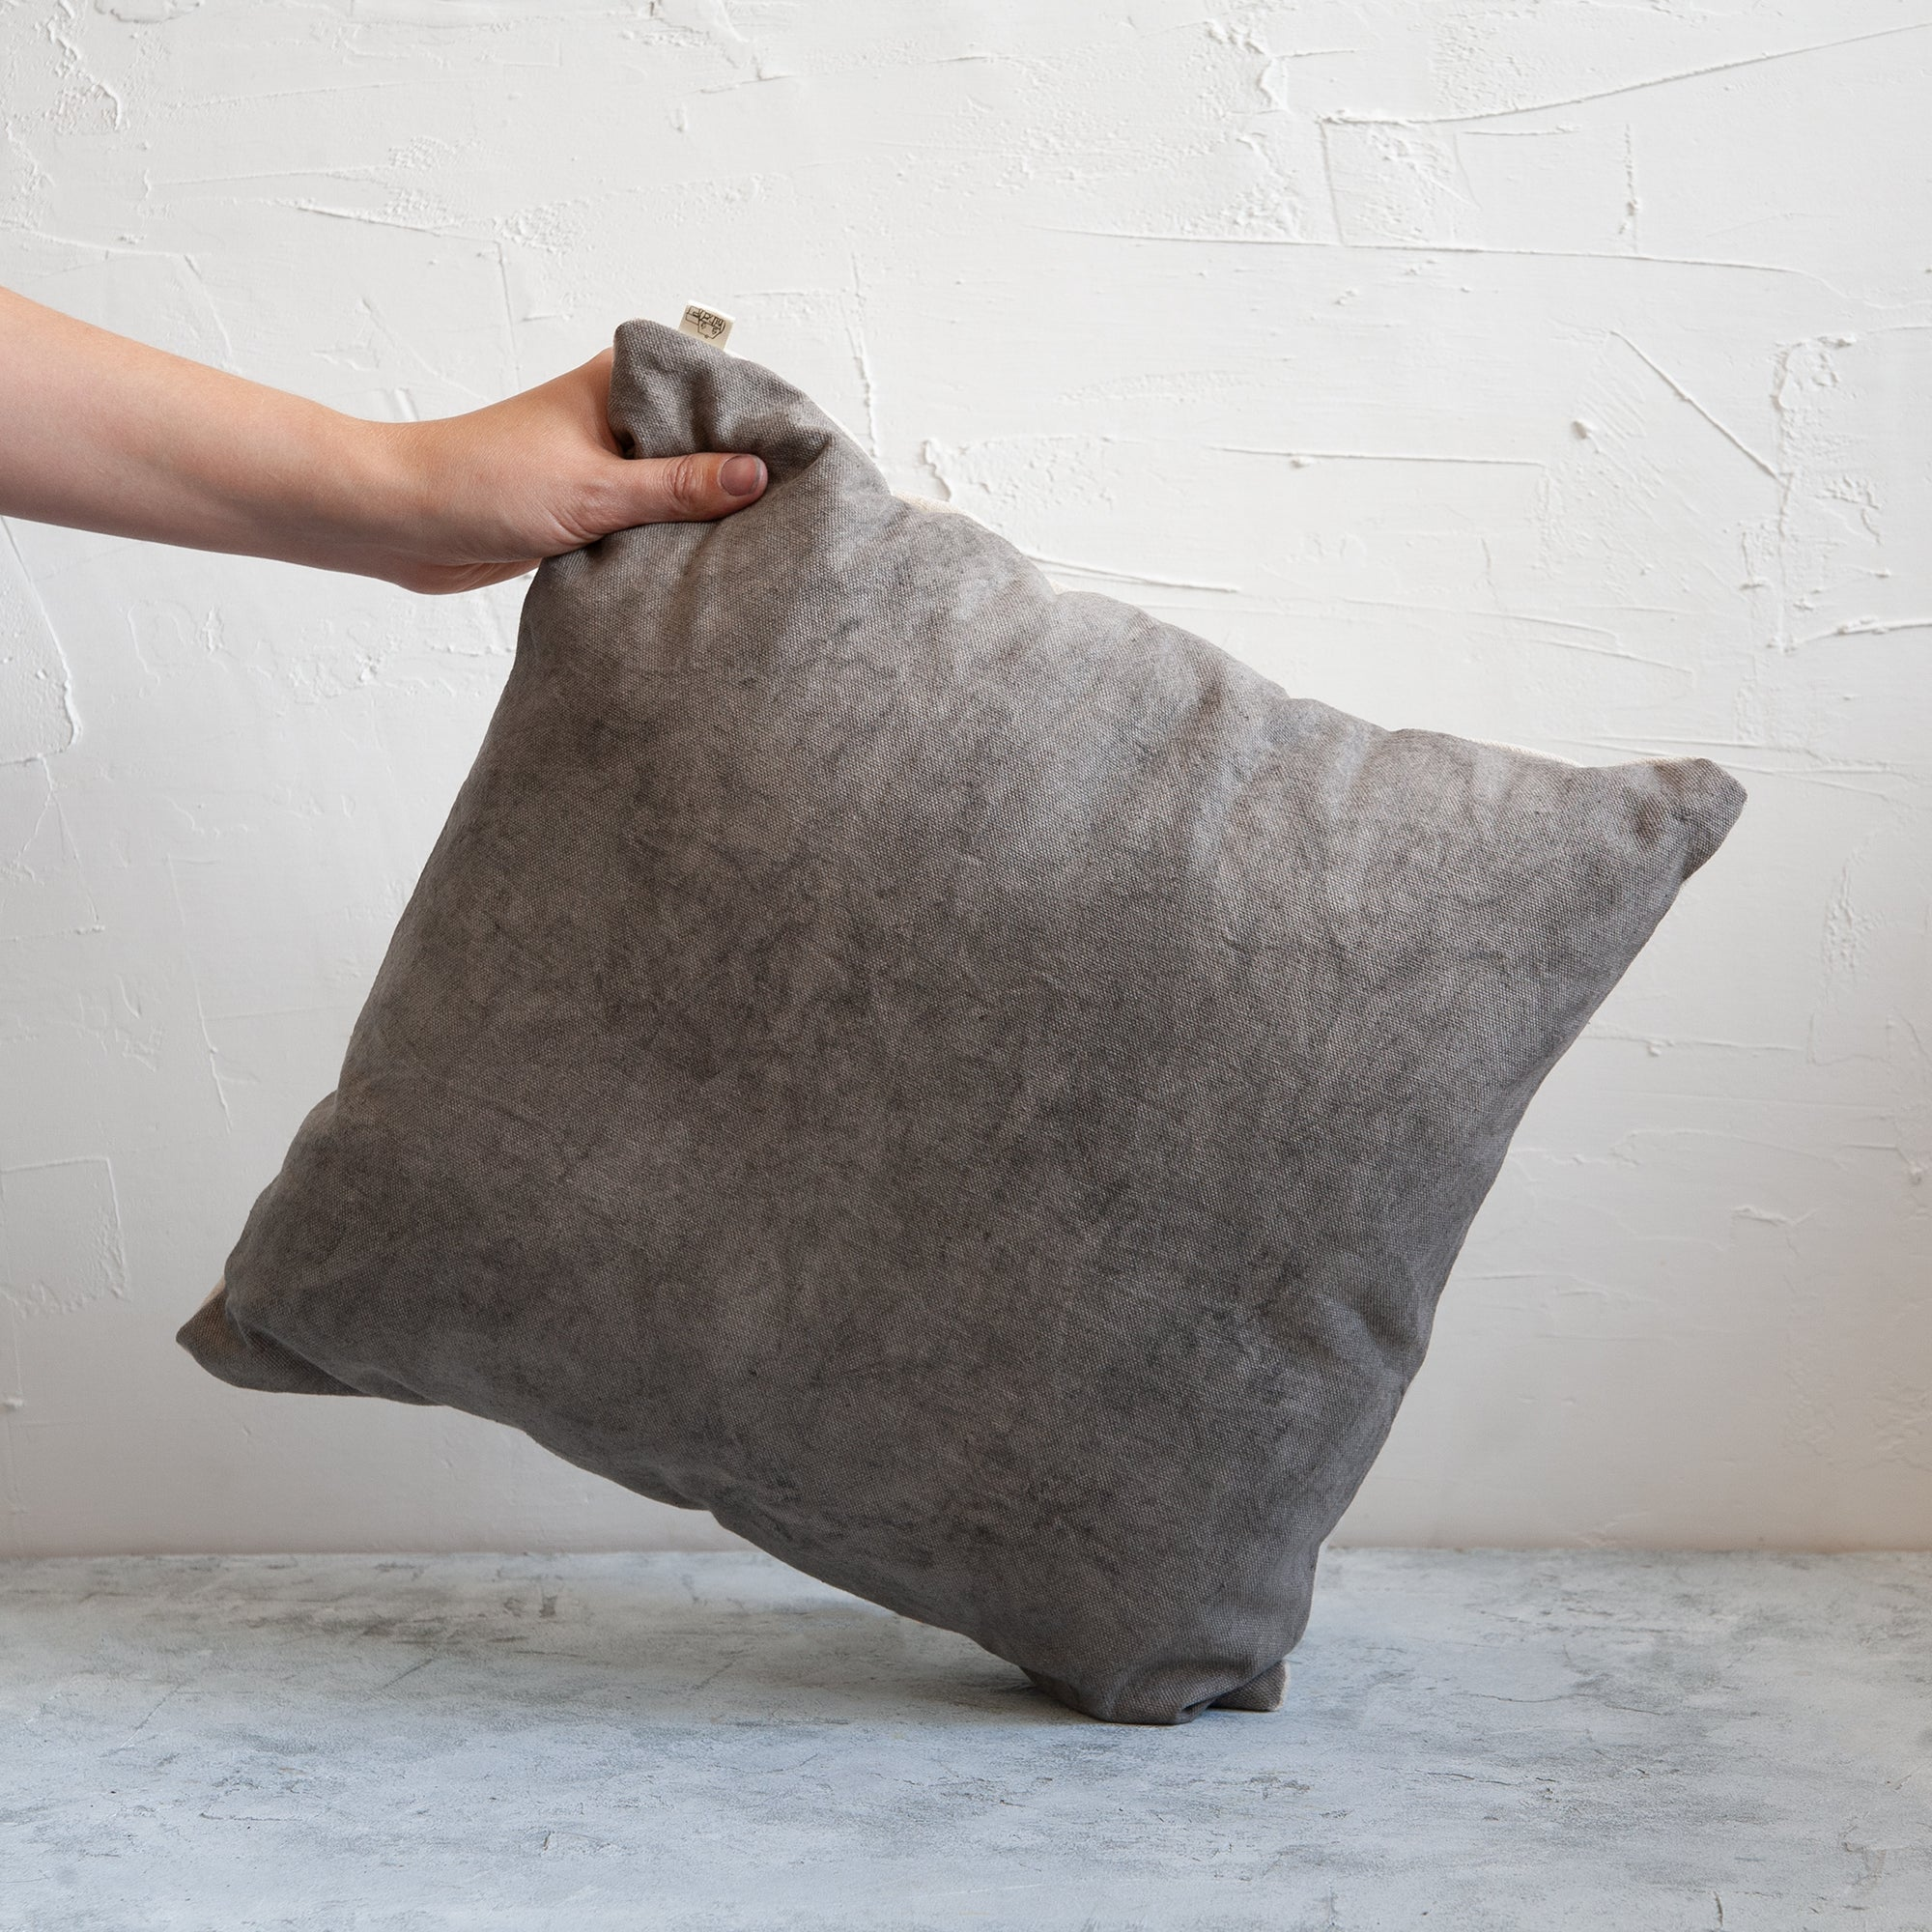 Eco friendly, botanically dyed cushion in grey